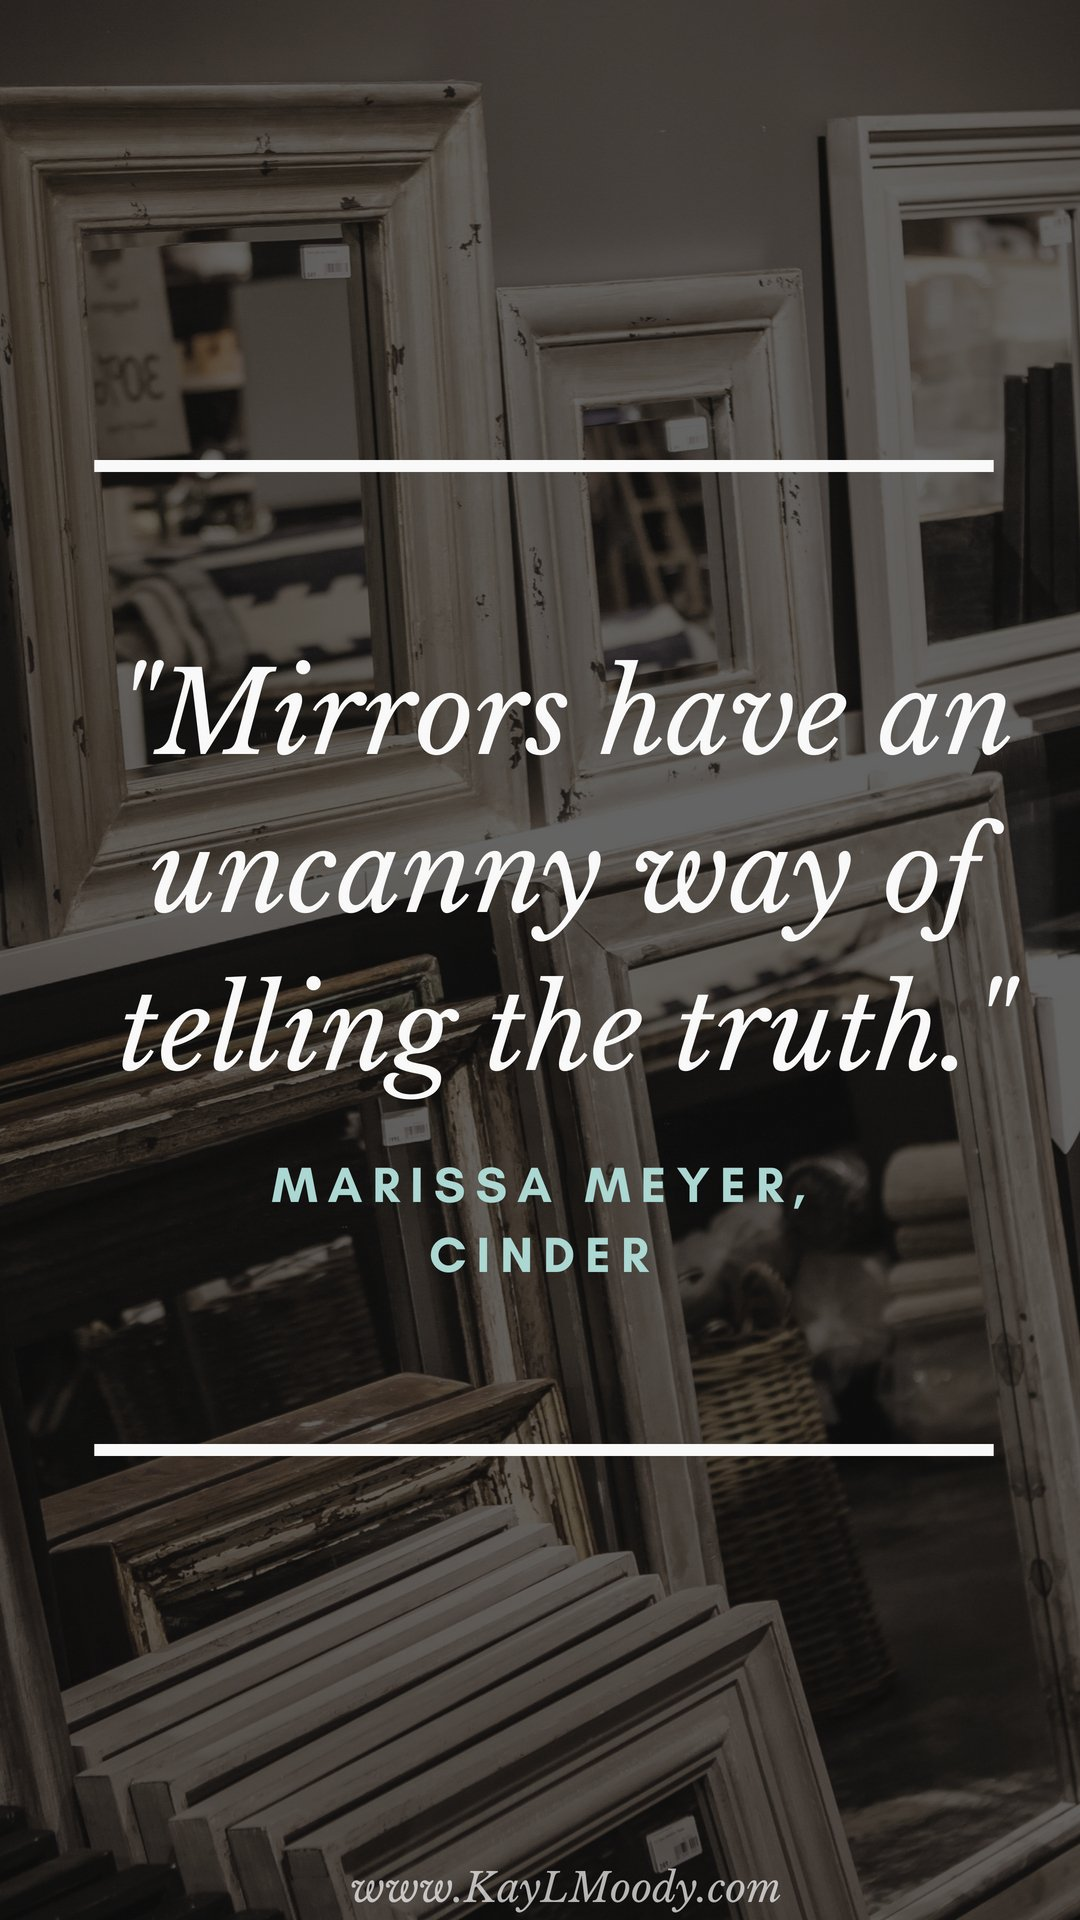 """Best book quotes, love quotes from books, sci fi book quotes, and more from Kay L Moody! """"Mirrors have an uncanny way of telling the truth."""" (Marissa Meyer, Cinder)"""